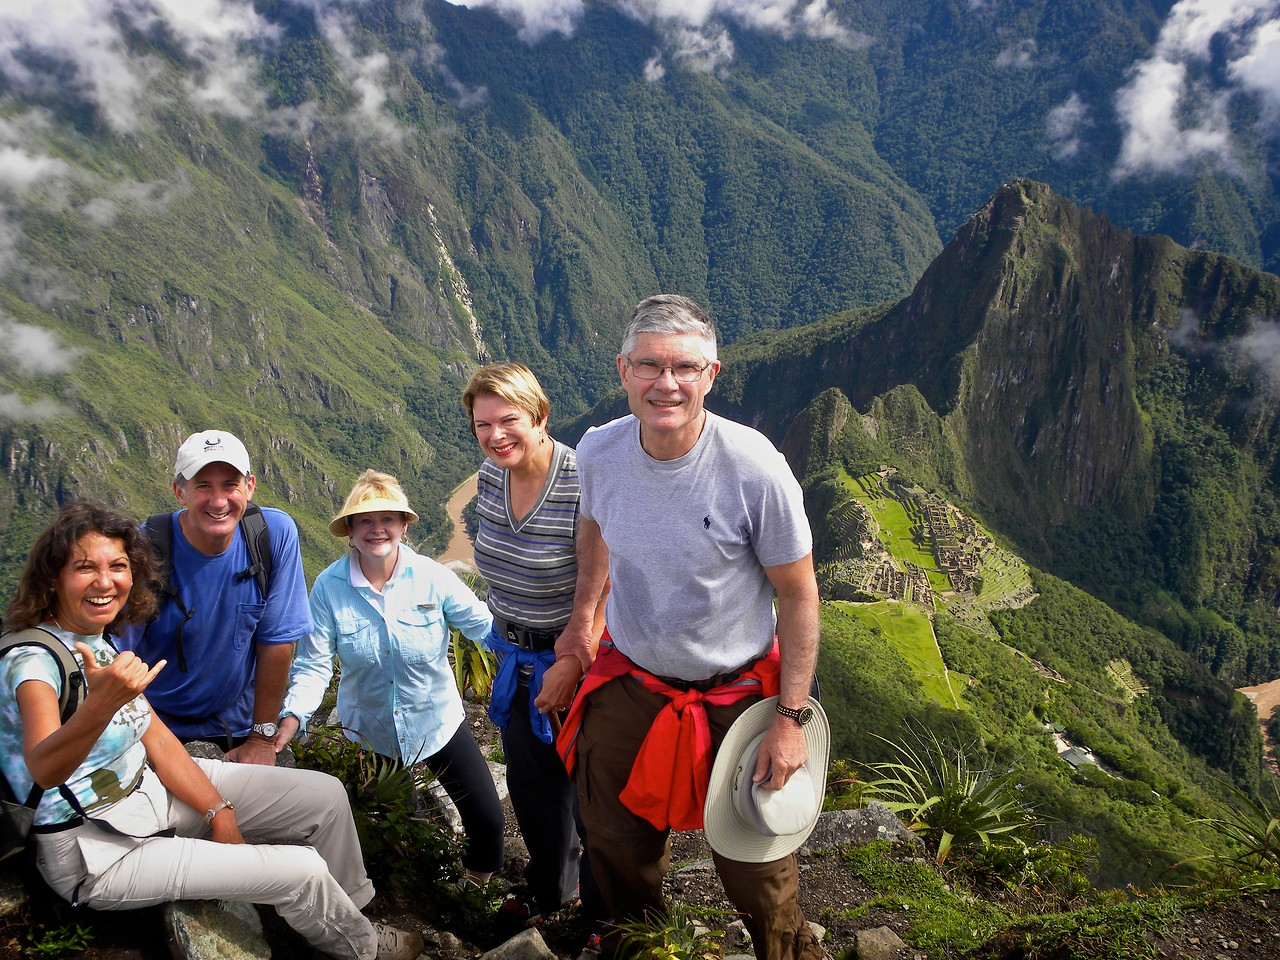 Here we are at the summit with Huyana Picchu and the Archeao site behind us.